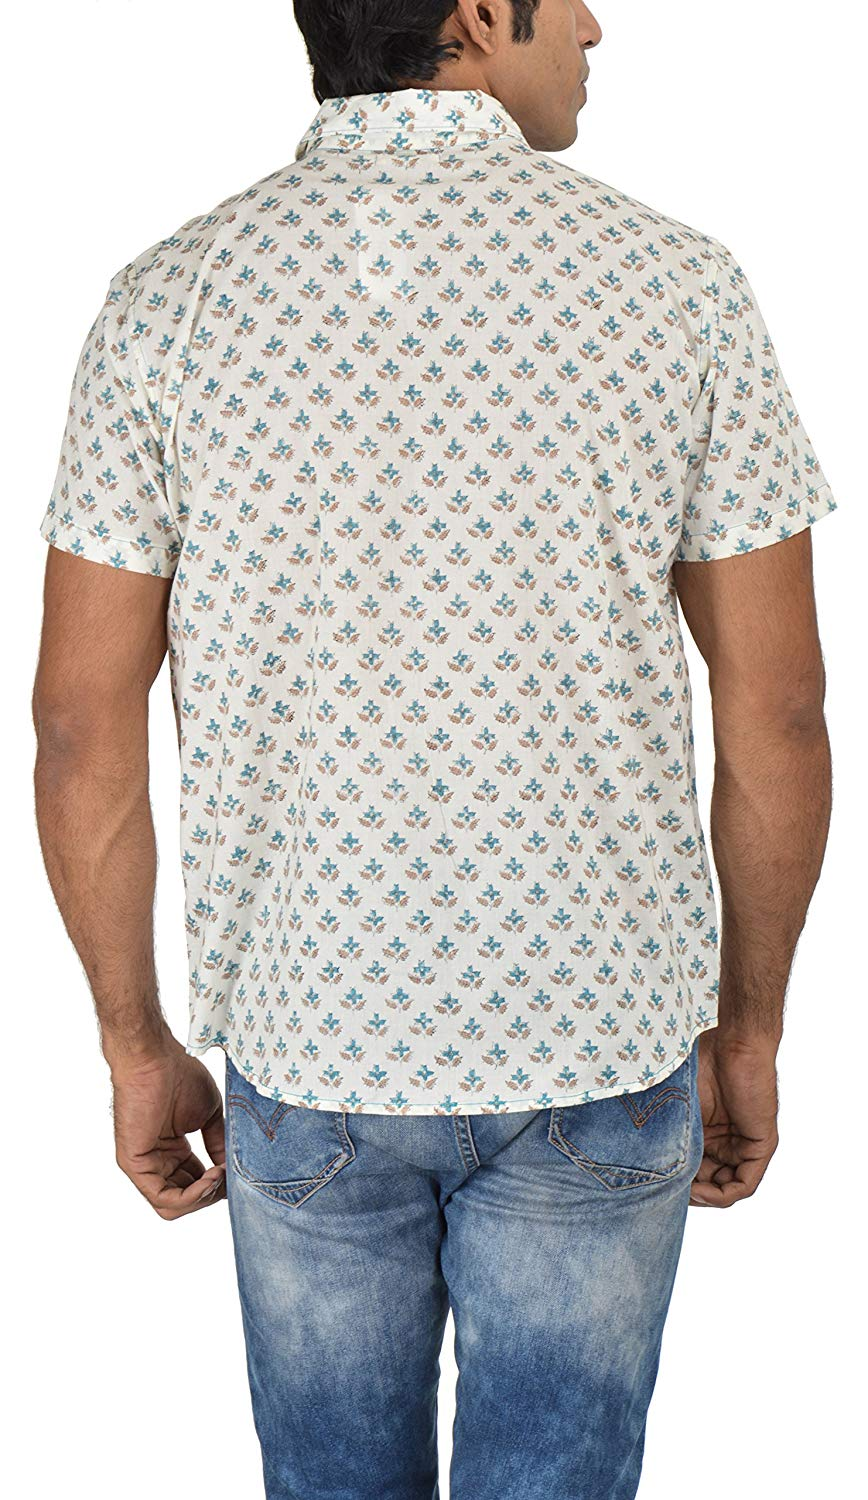 Holiday Shirt - Block Printed - Turquoise- Shirt